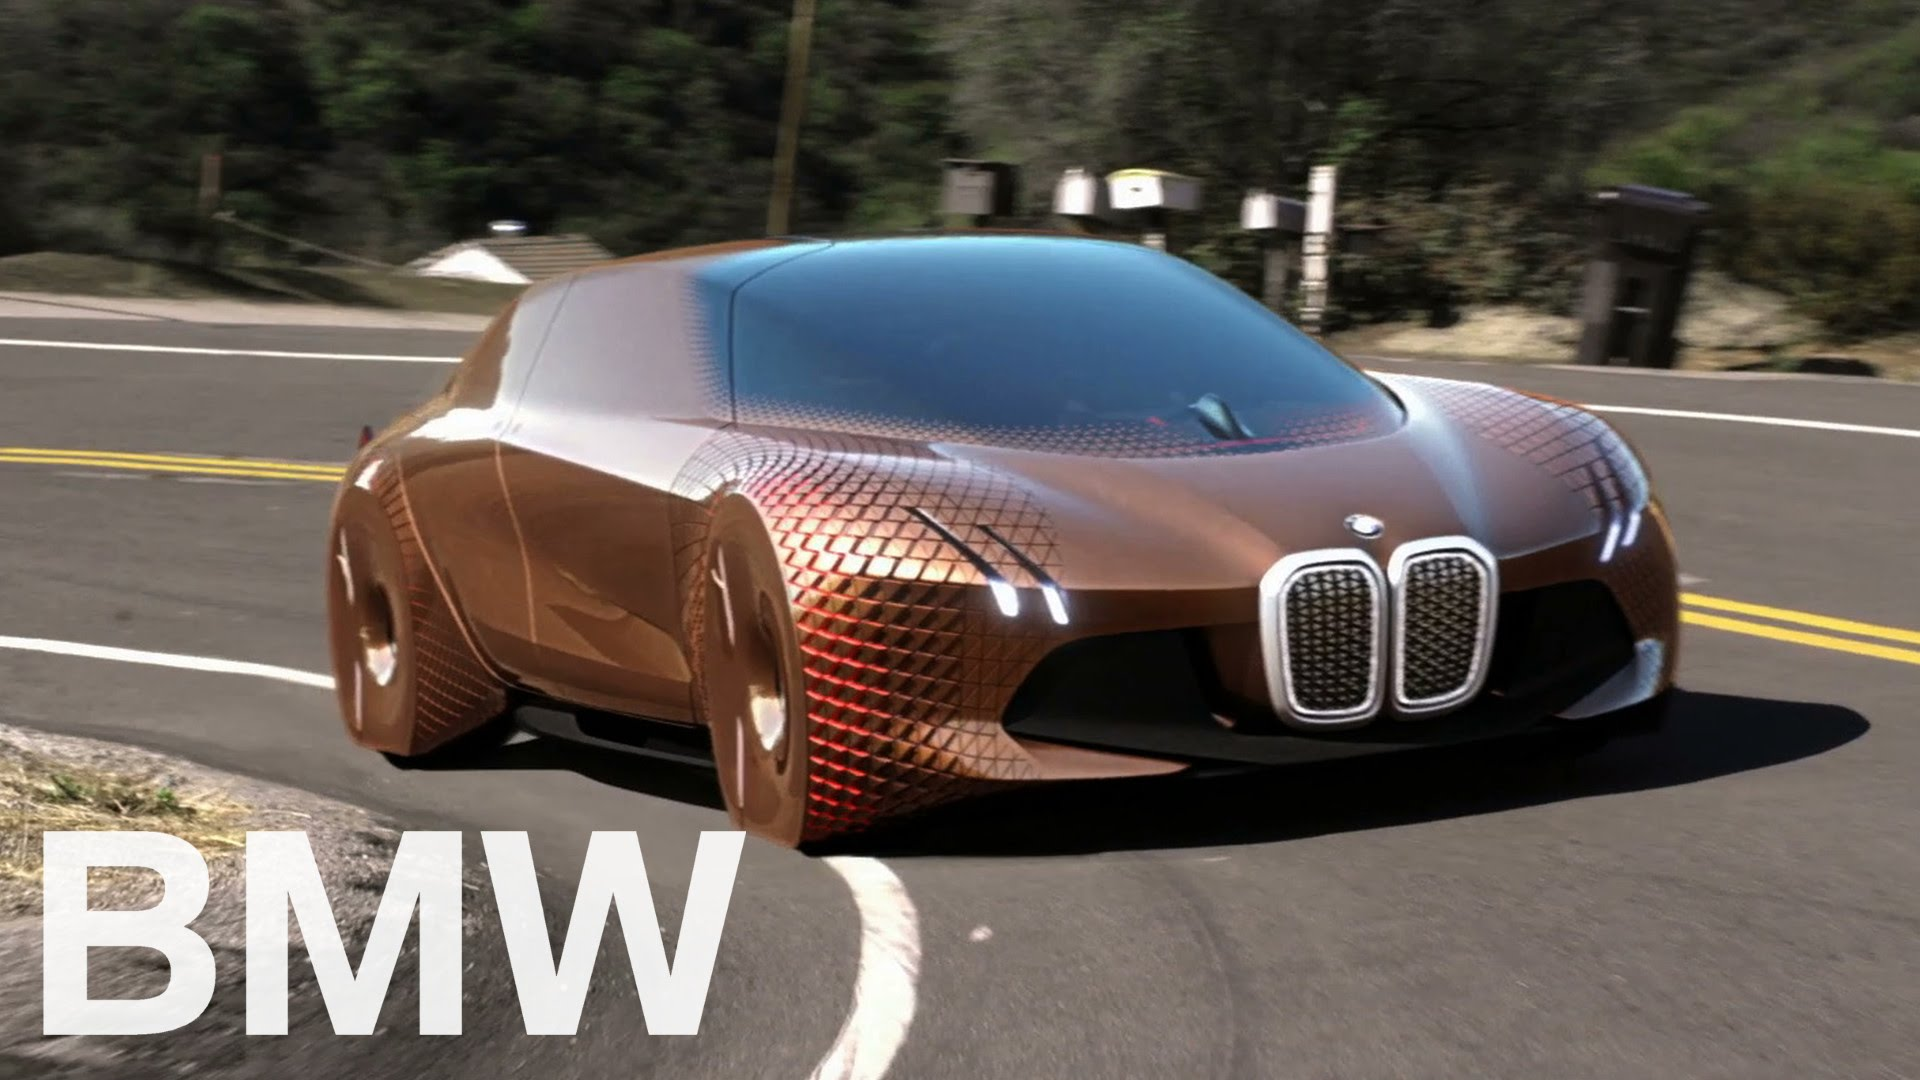 Bmw Presented Their Concept Car Called Vision Next 100 Is Out Of